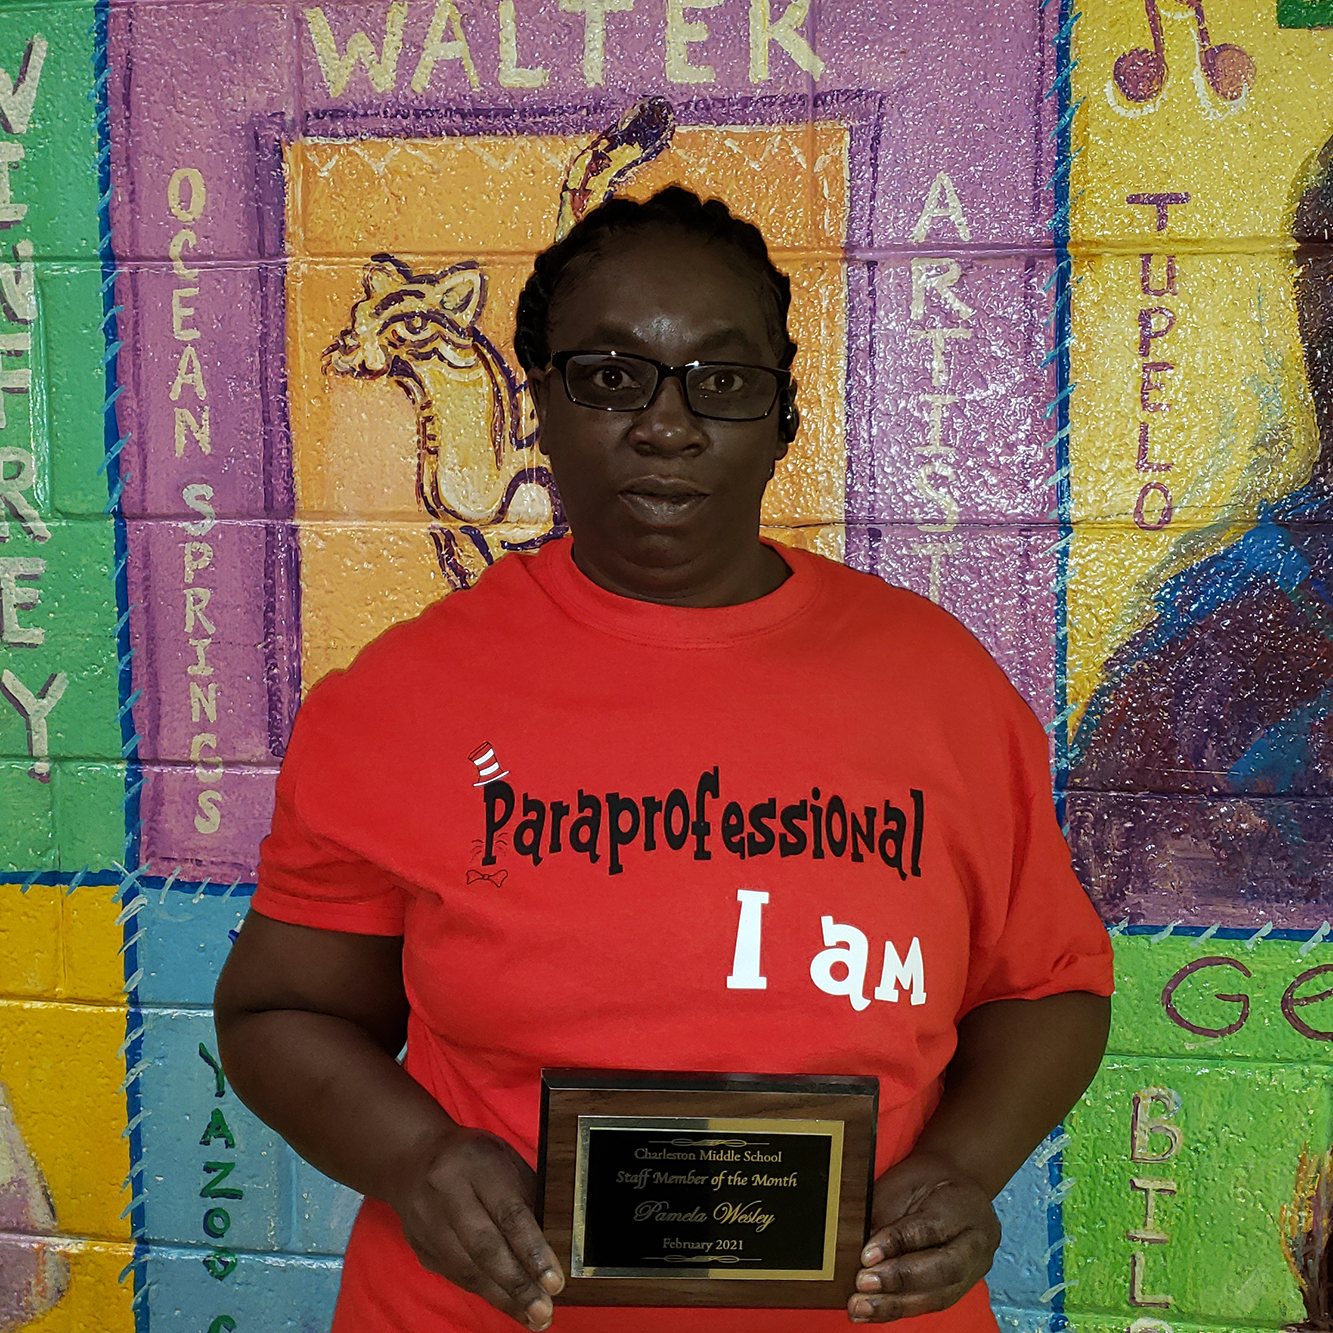 Teacher/team member of the month